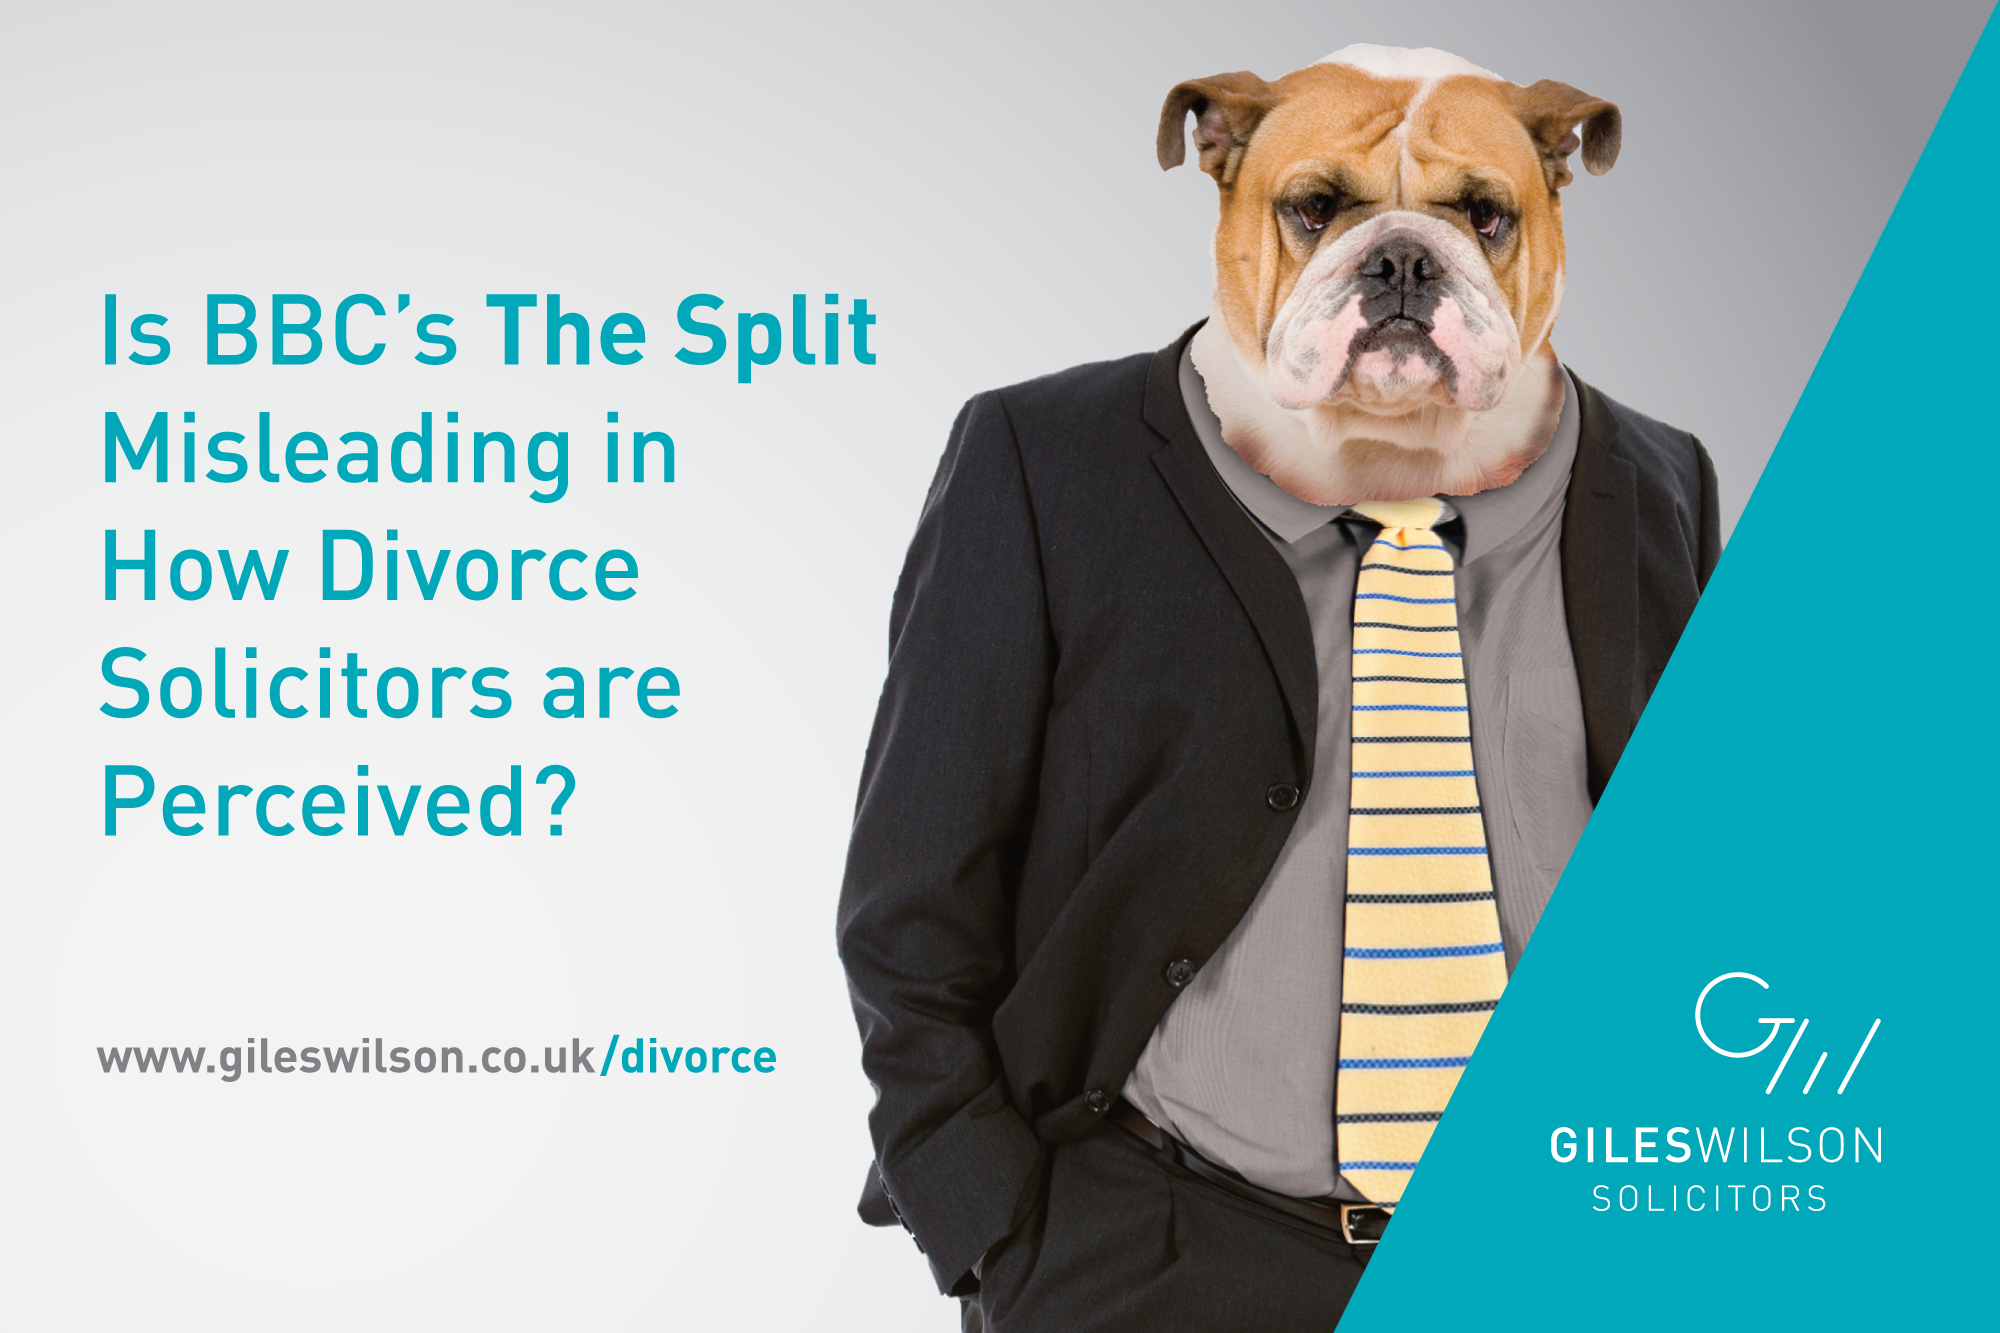 The Split & The Reality of the Divorce Process | Giles Wilson Solicitors - Giles Wilson Solicitors